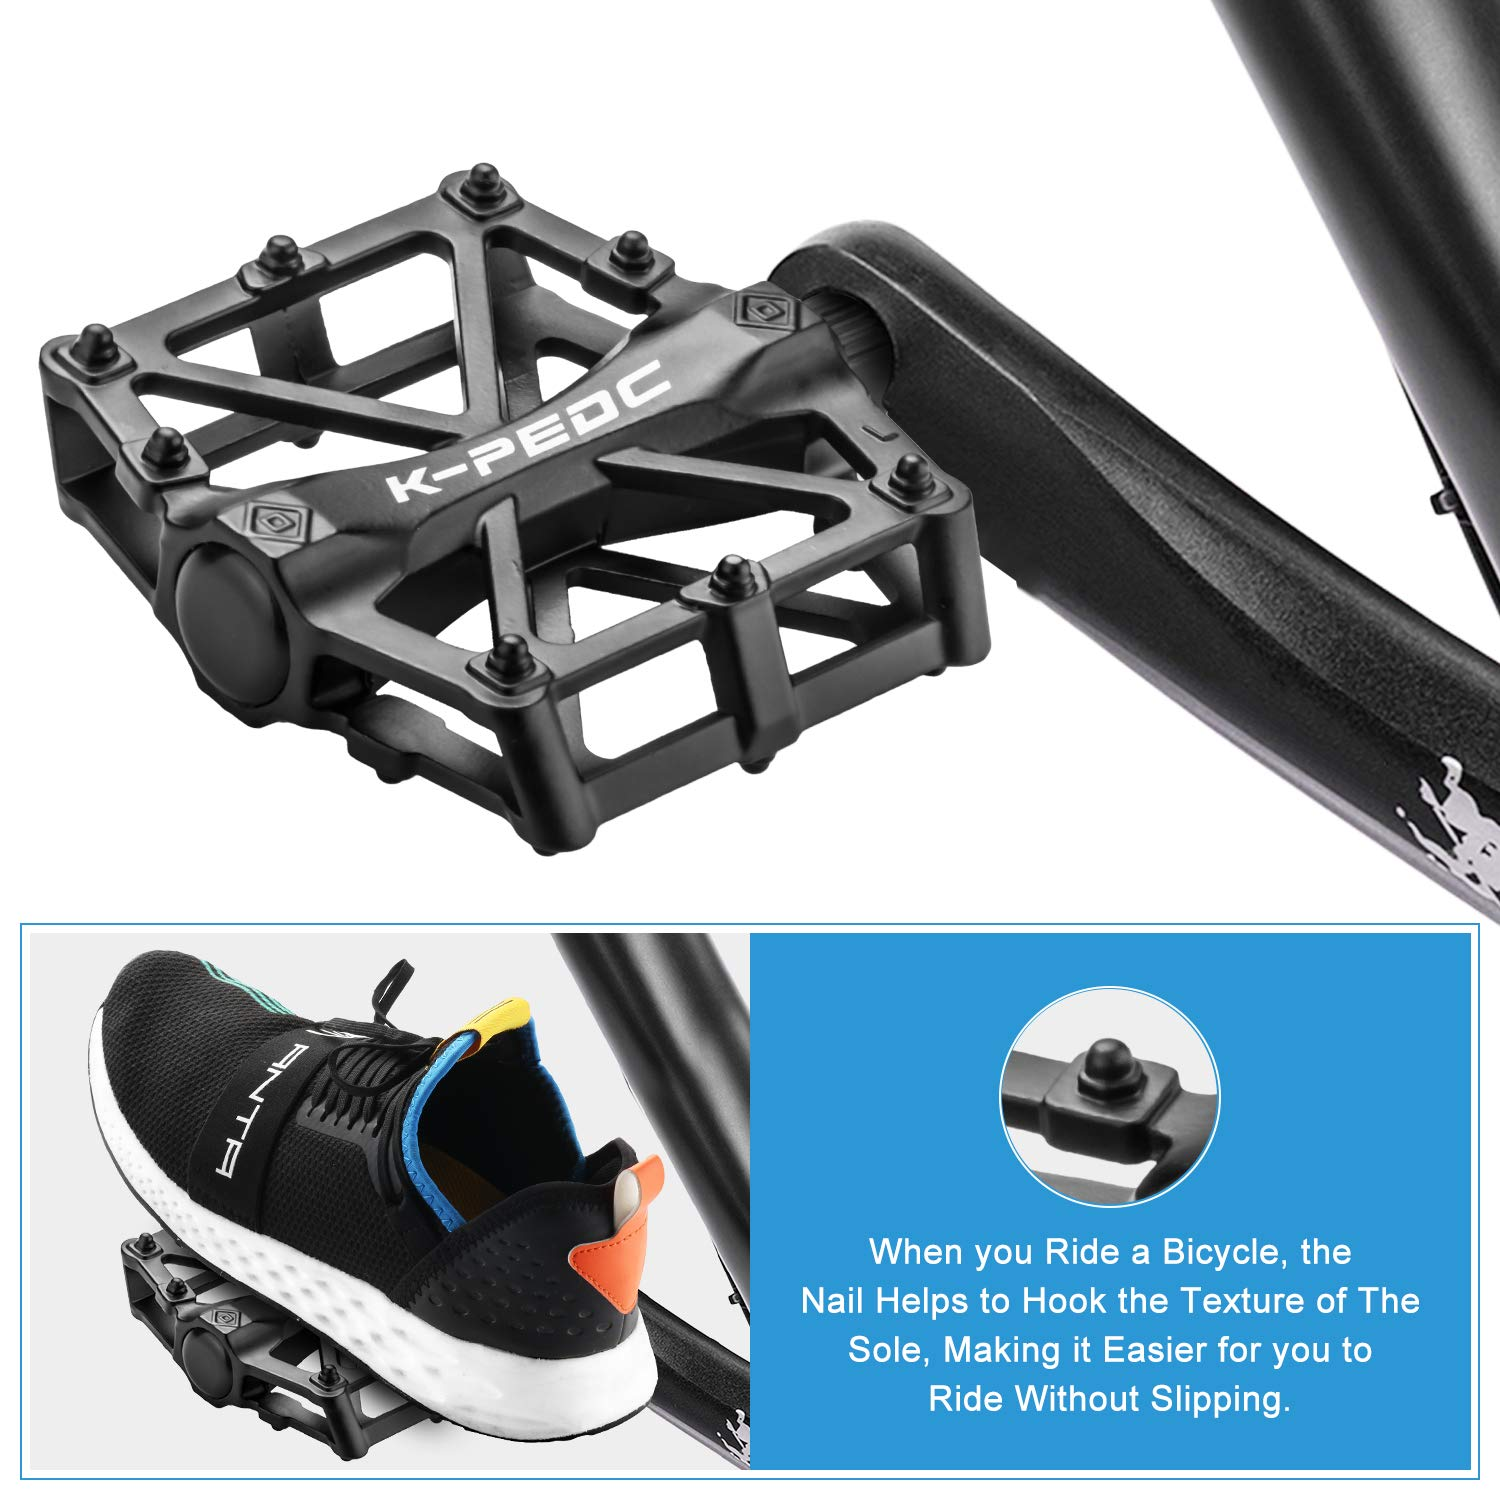 FORIZEN Bike Pedal MTB BMX Cycling Bicycle Pedals Bike Bicycle Pedals 9//16 inch Aluminum Antiskid Durable Moun tain Bike Pedals